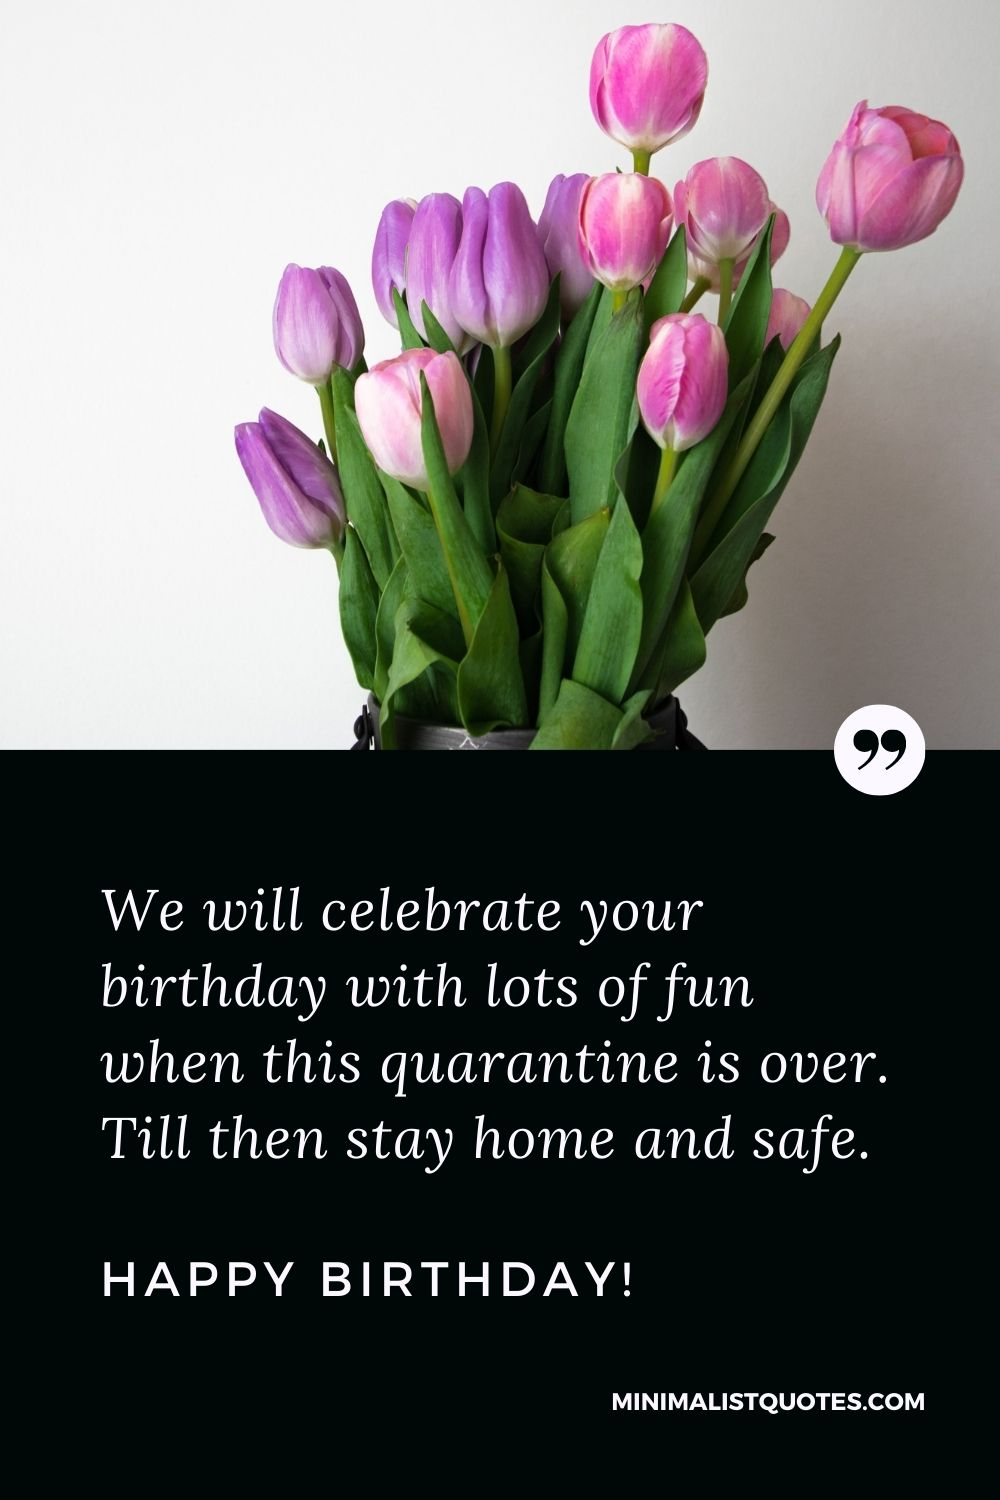 Quarantine Birthday Quote, Wish & Message With Image: We will celebrate your birthday with lots of fun when this quarantine is over. Till then stay home and safe. Happy Birthday!